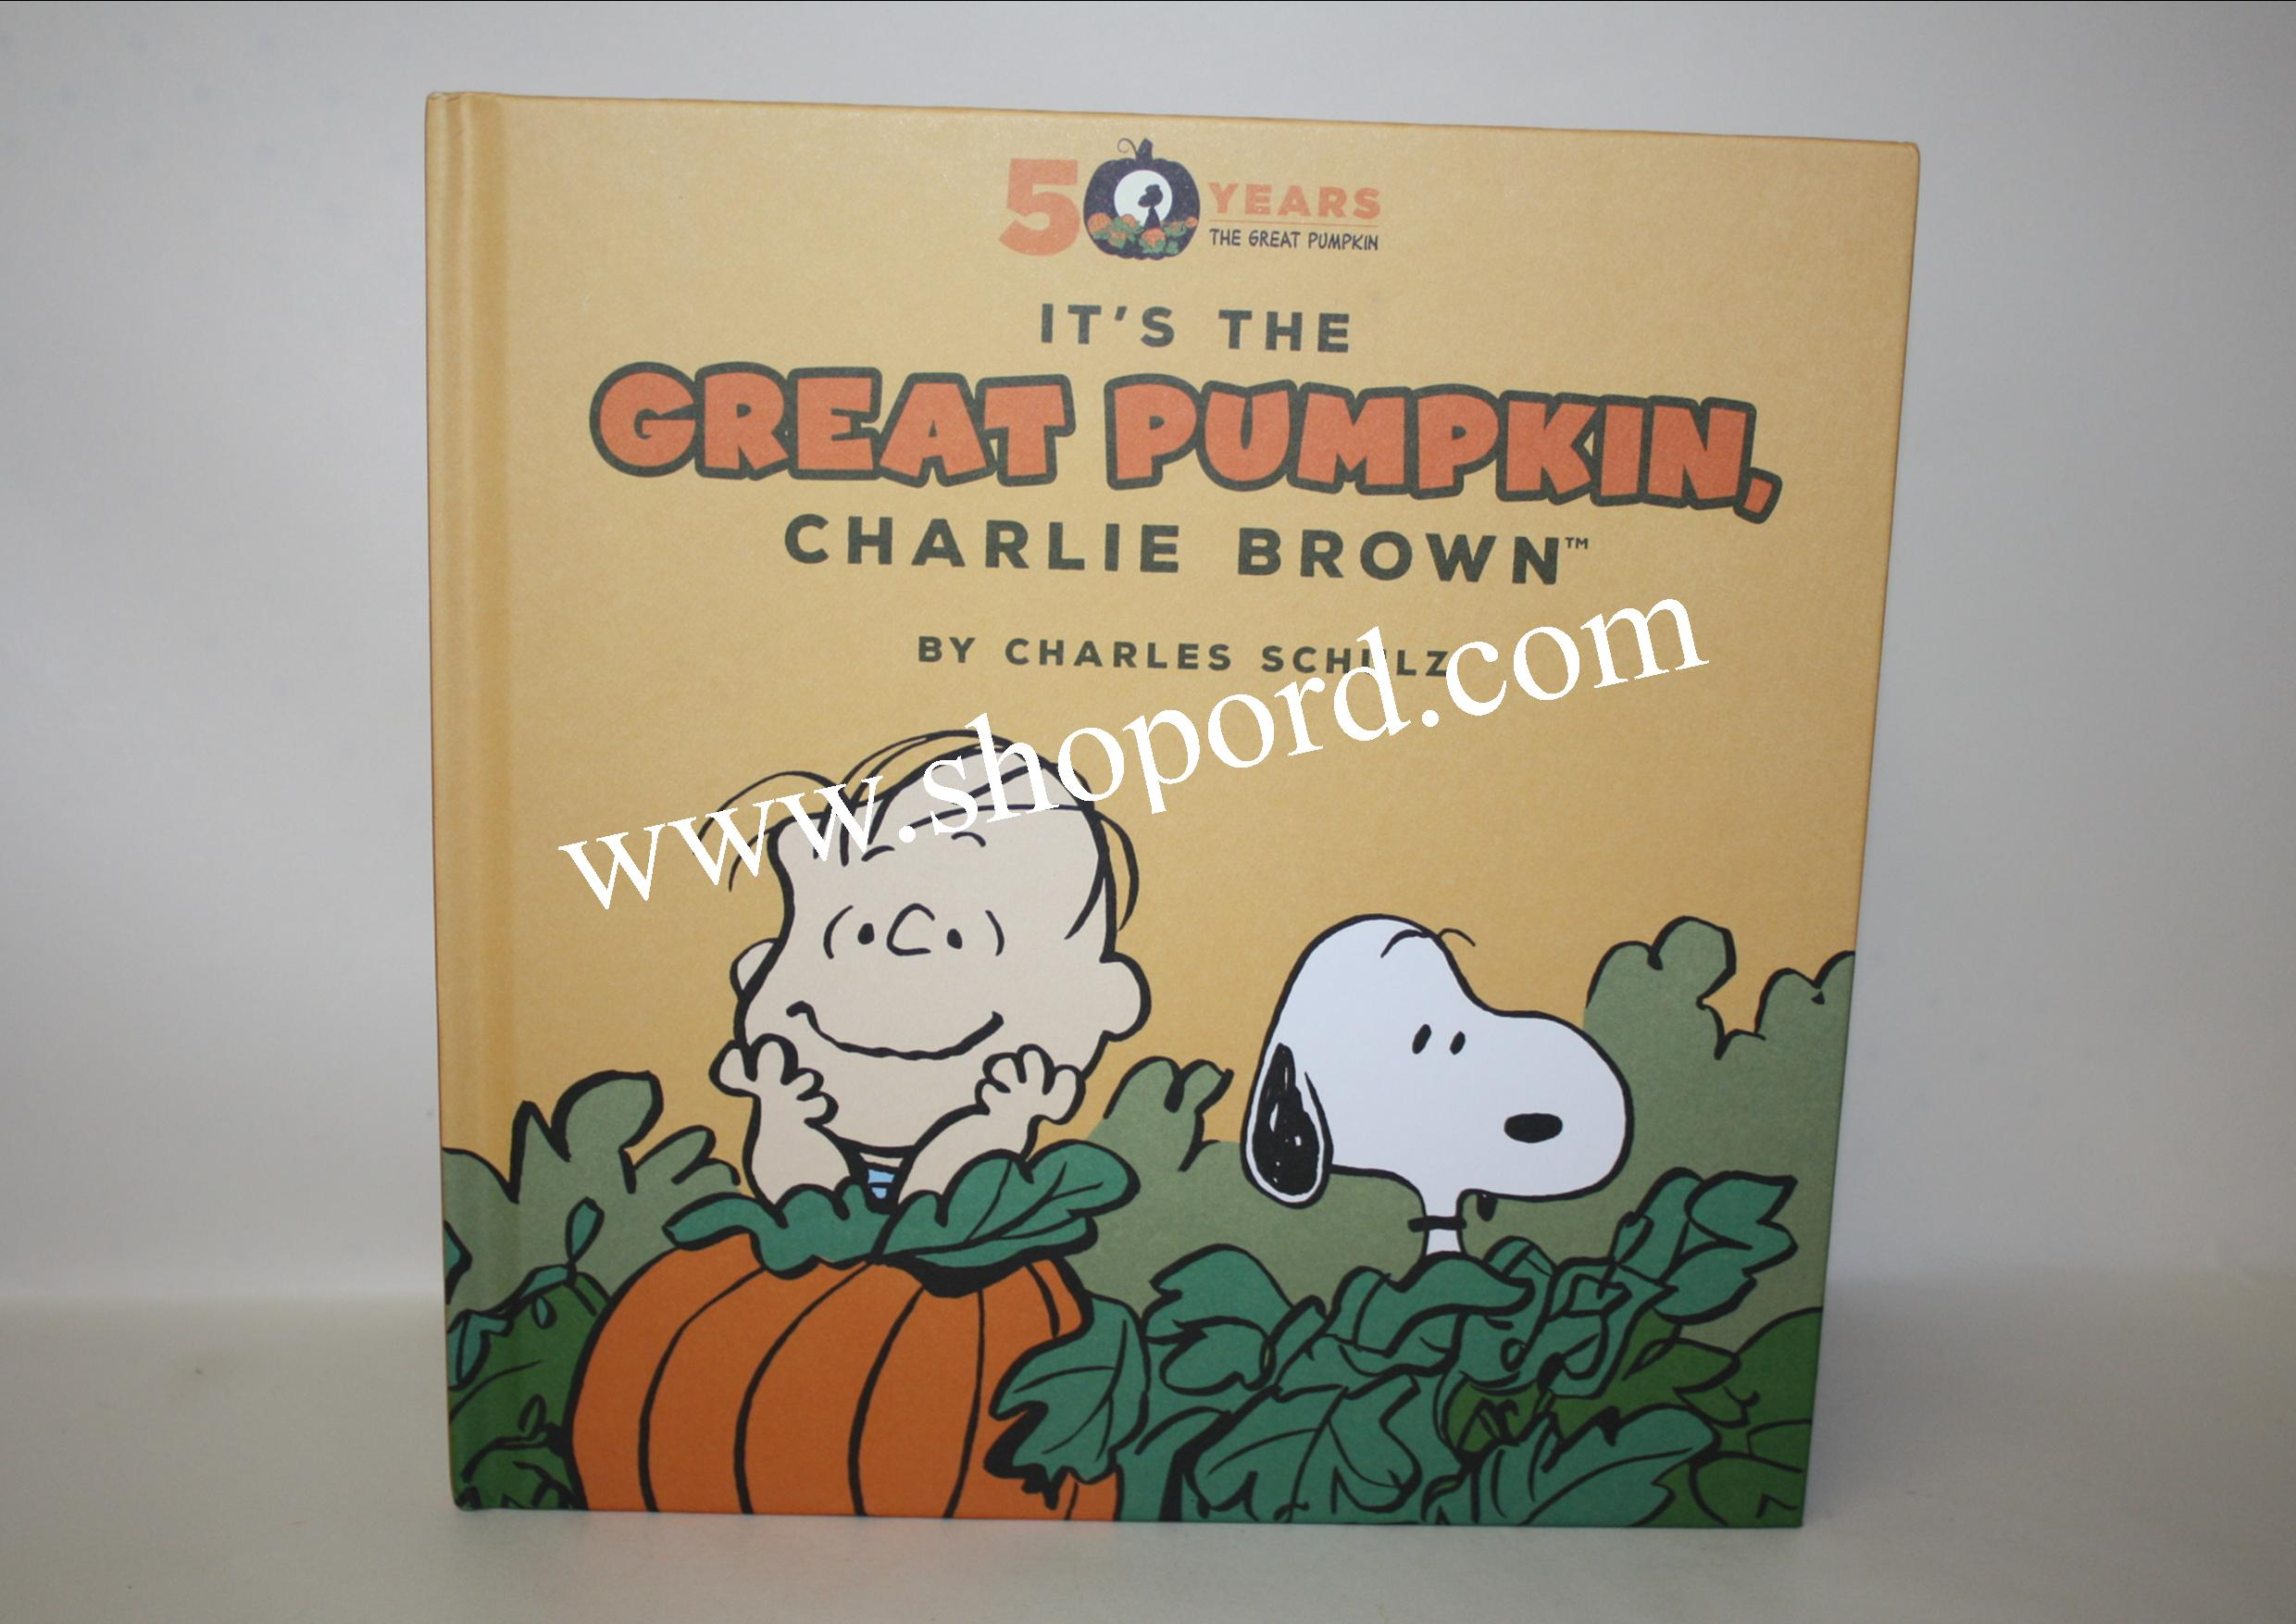 Hallmark Peanut Great Pumpkin Charlie Brown Hardcover Book 50th Anniversary HGN1215